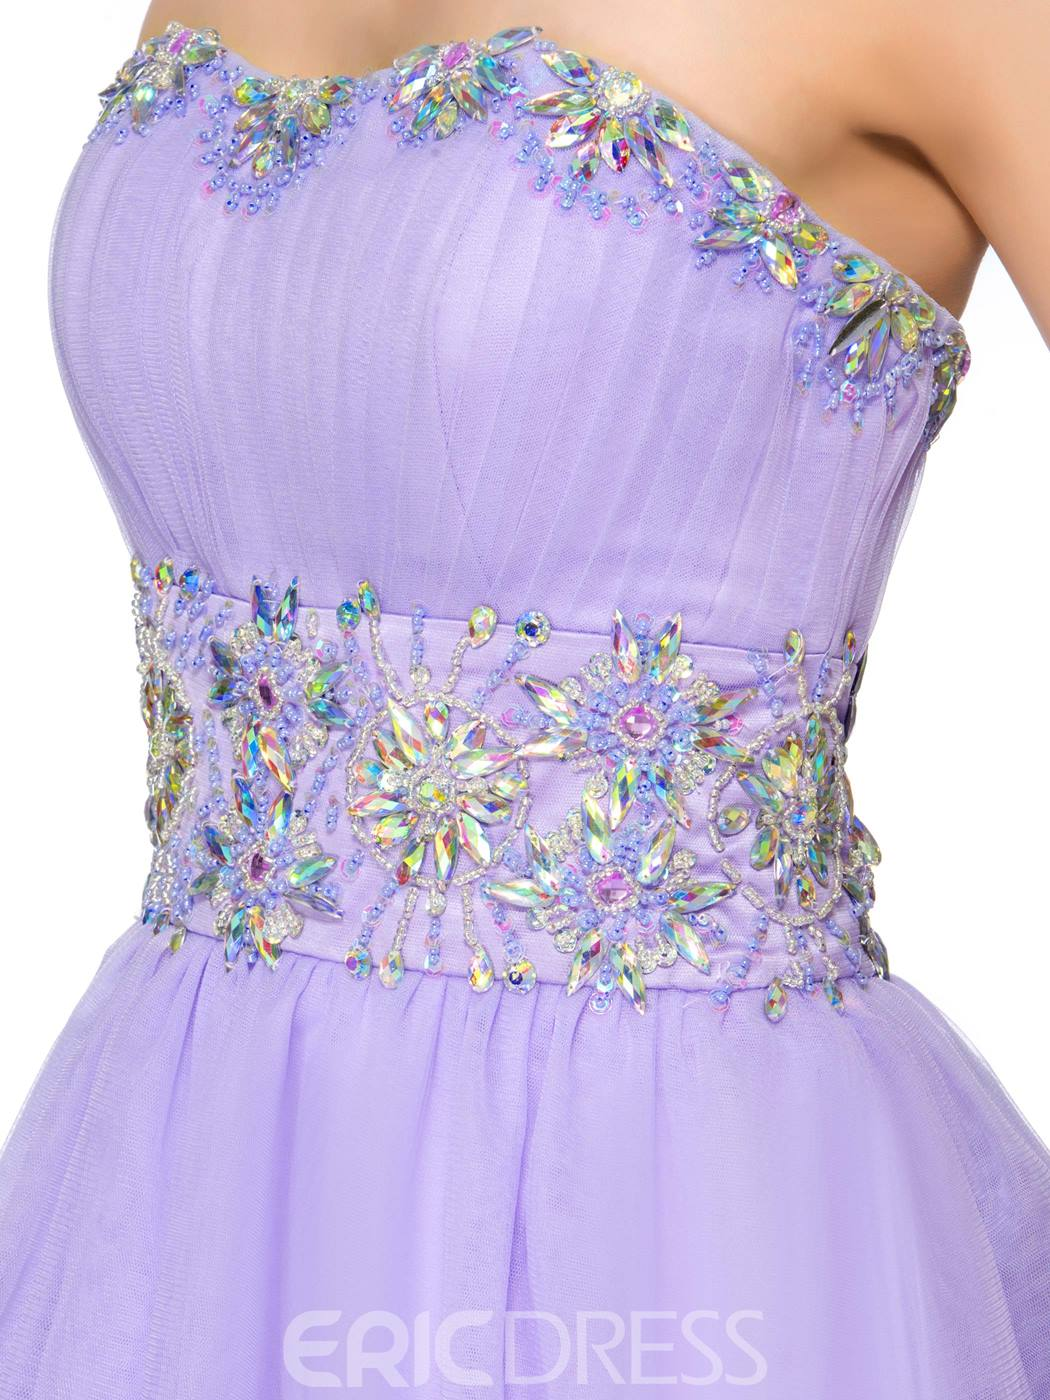 Ericdress Fancy Sweetheart Beading Tiered Lace-up Short Homecoming Dress